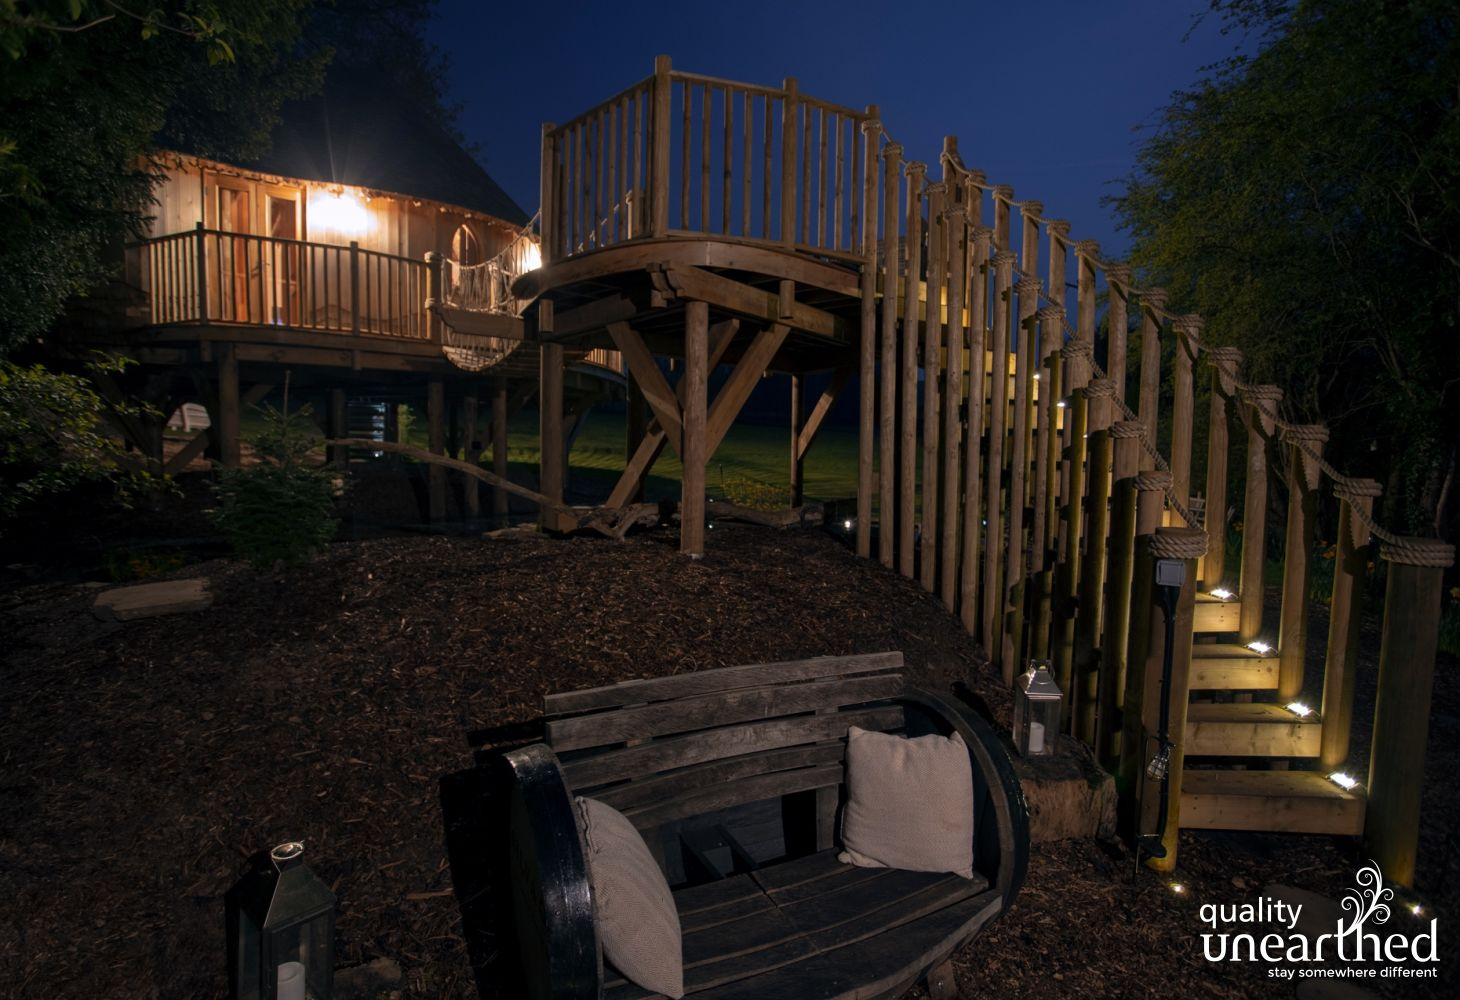 A wooden bench sits at the bottom of the circular stairs. A rope bridge leads to the treehouse with Breacon Beacons views